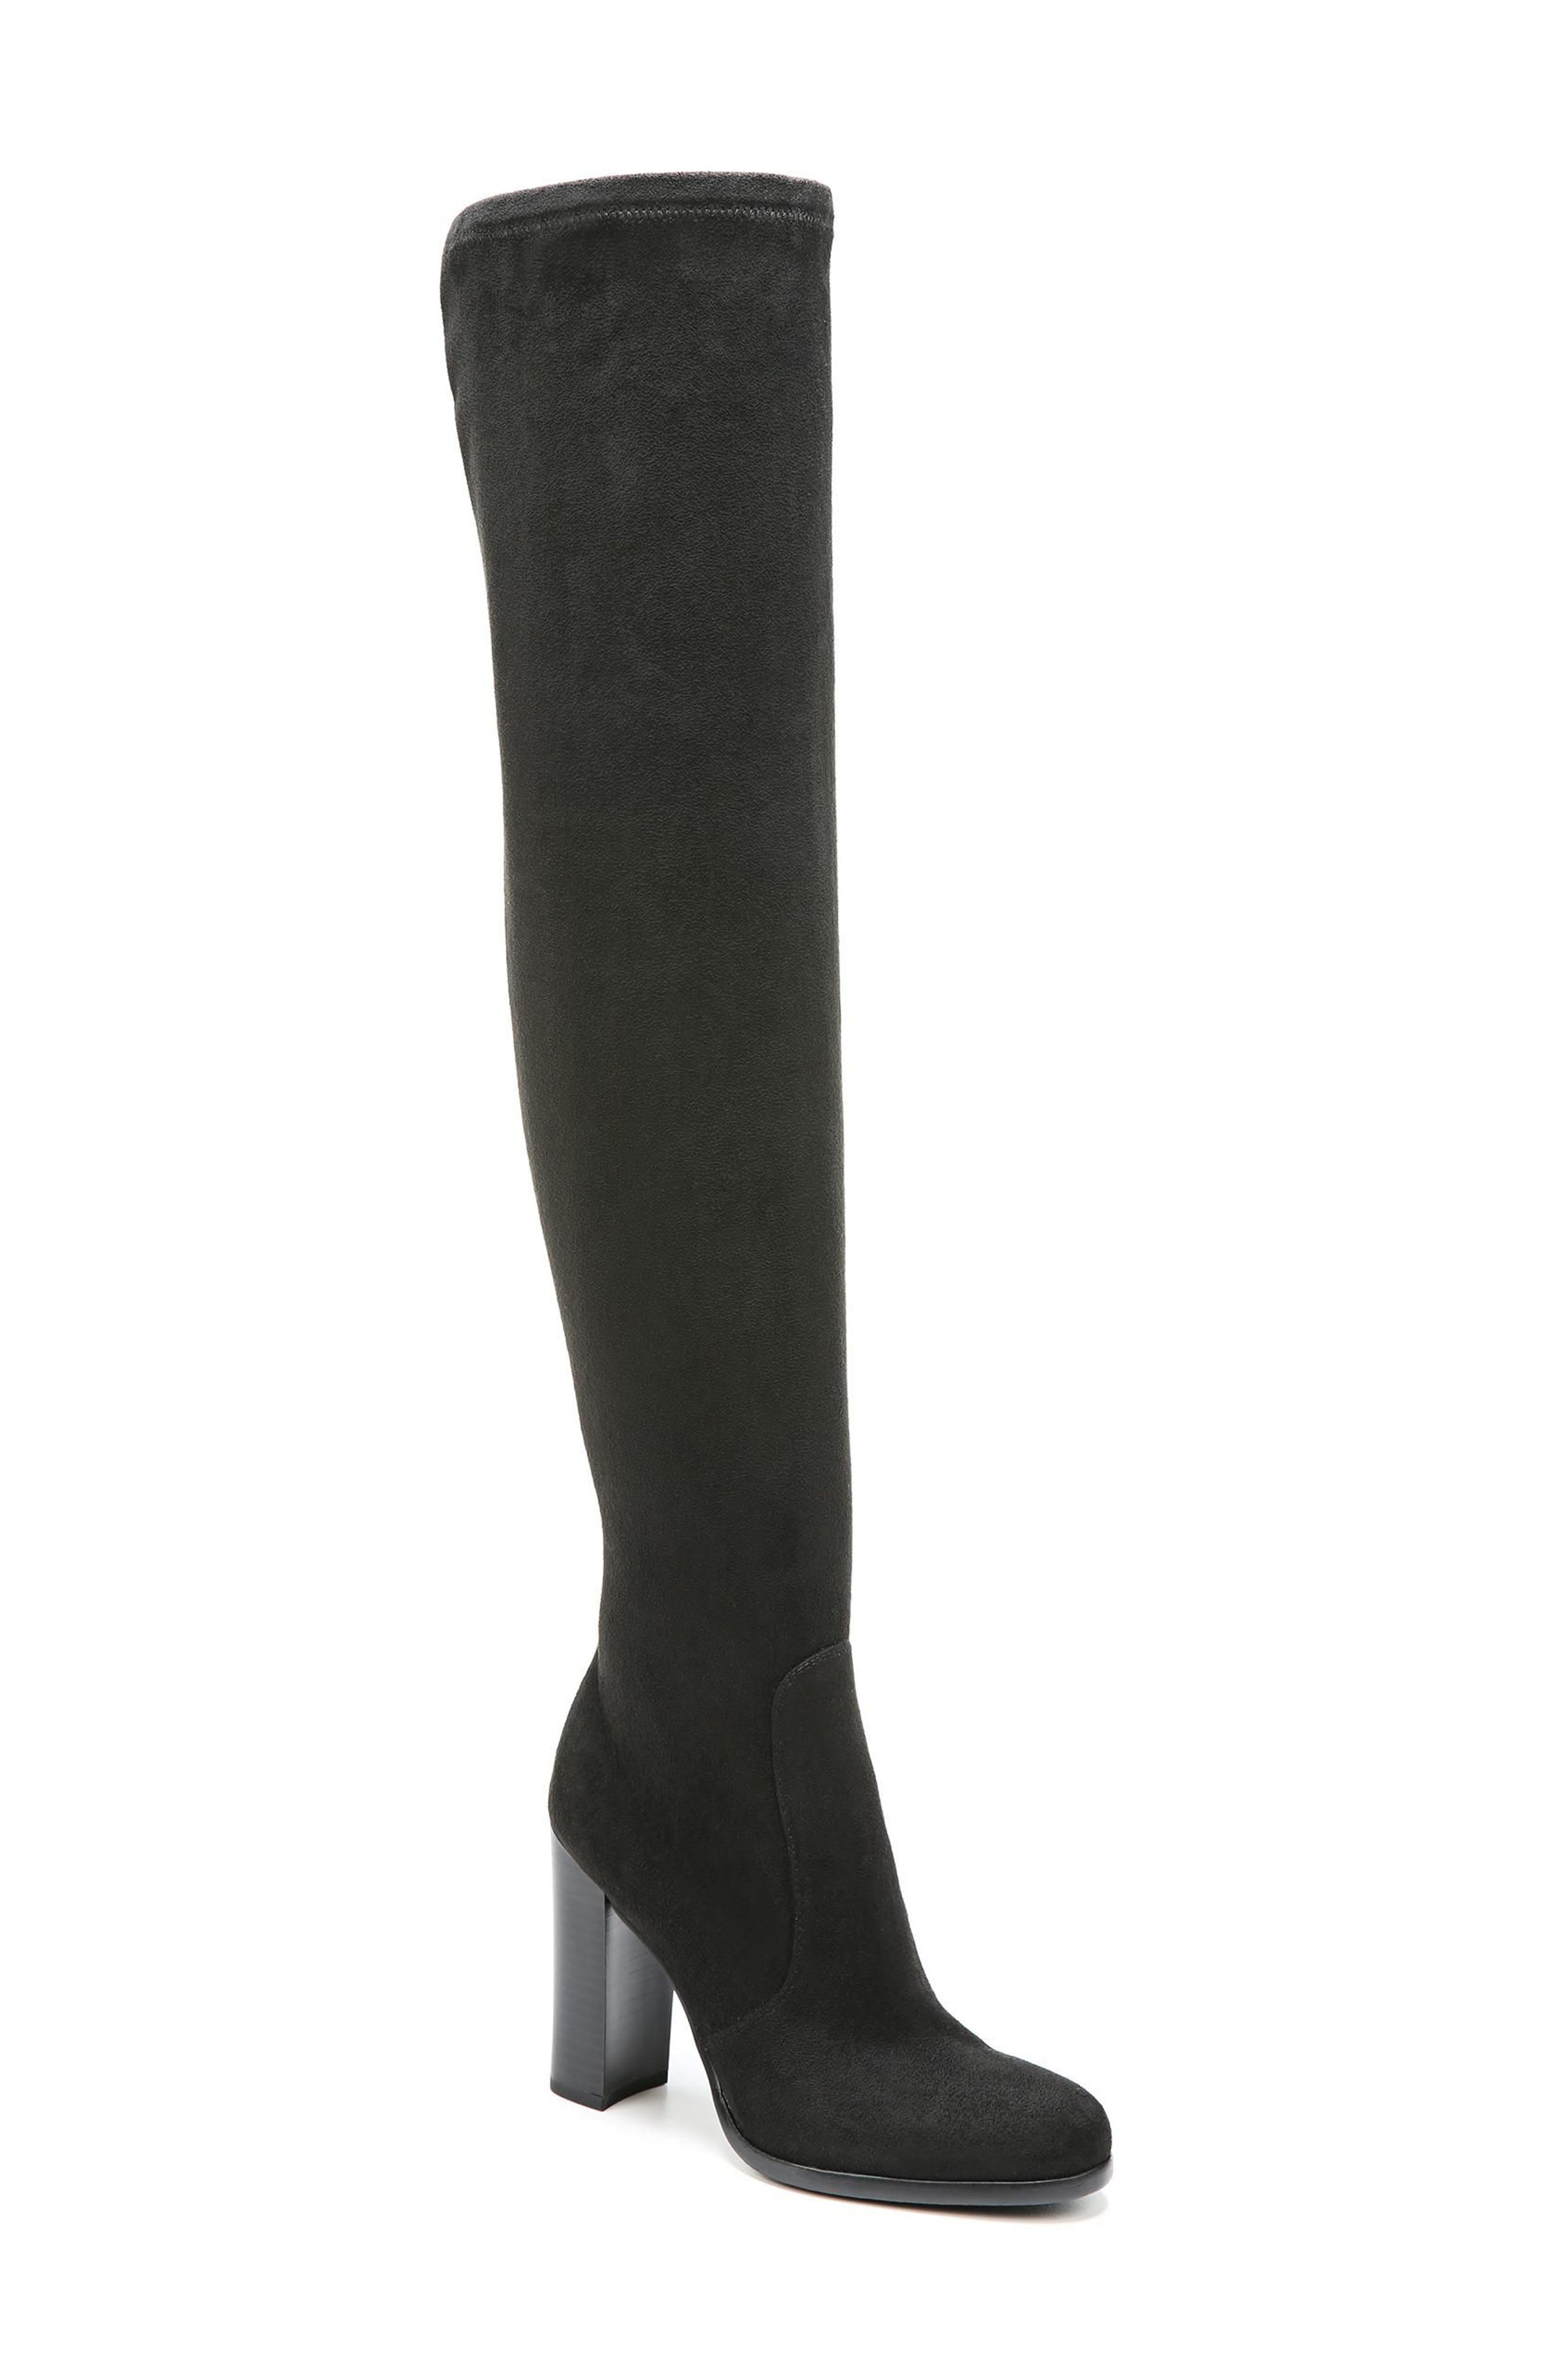 Vena 2 Over the Knee Boot,                         Main,                         color, Black